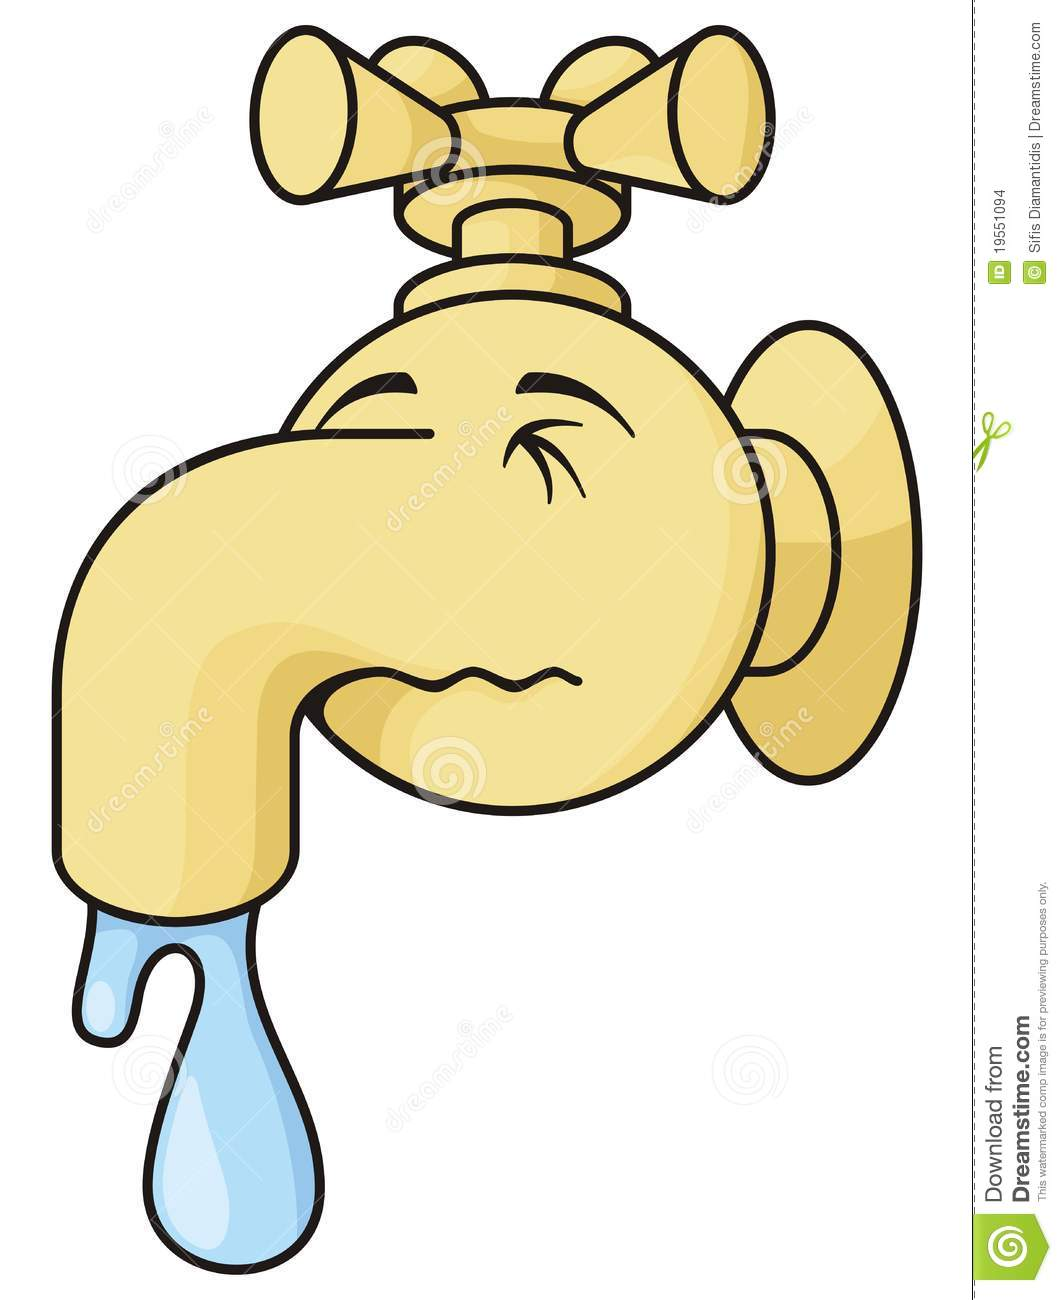 Dripping Faucet Cartoon Illustration Simulating Human Nose On White